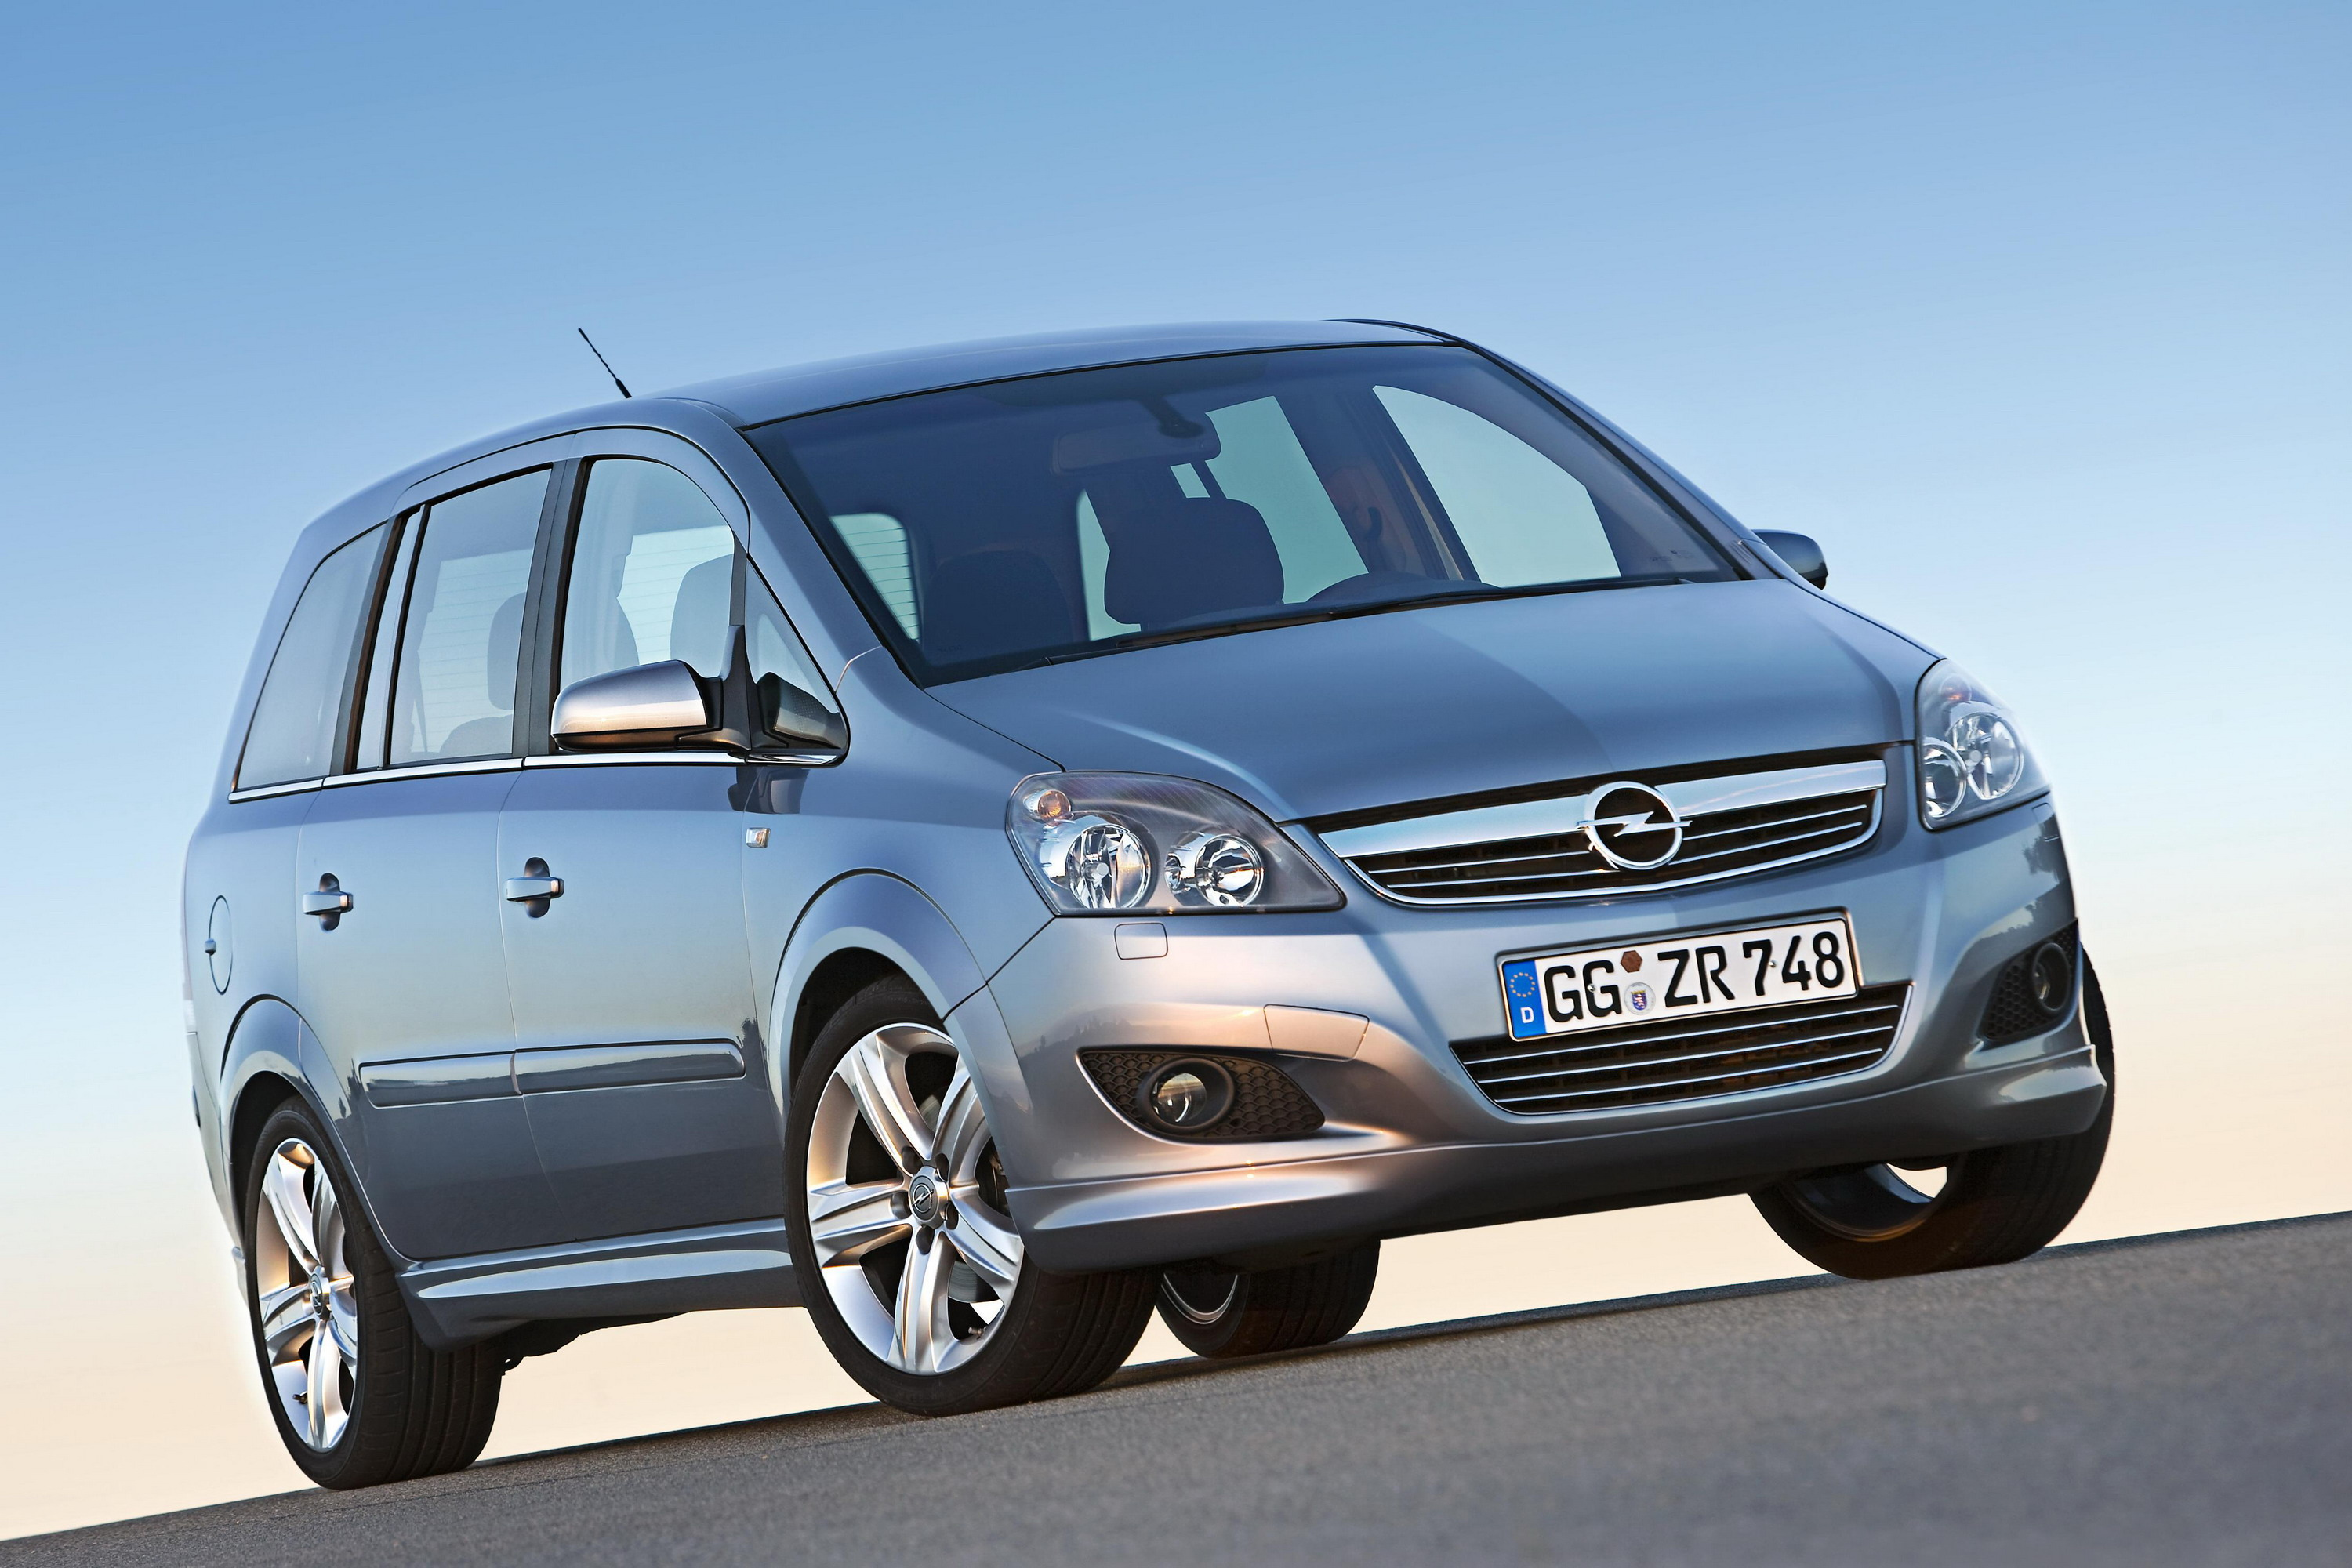 opel zafira pricing announced top speed. Black Bedroom Furniture Sets. Home Design Ideas